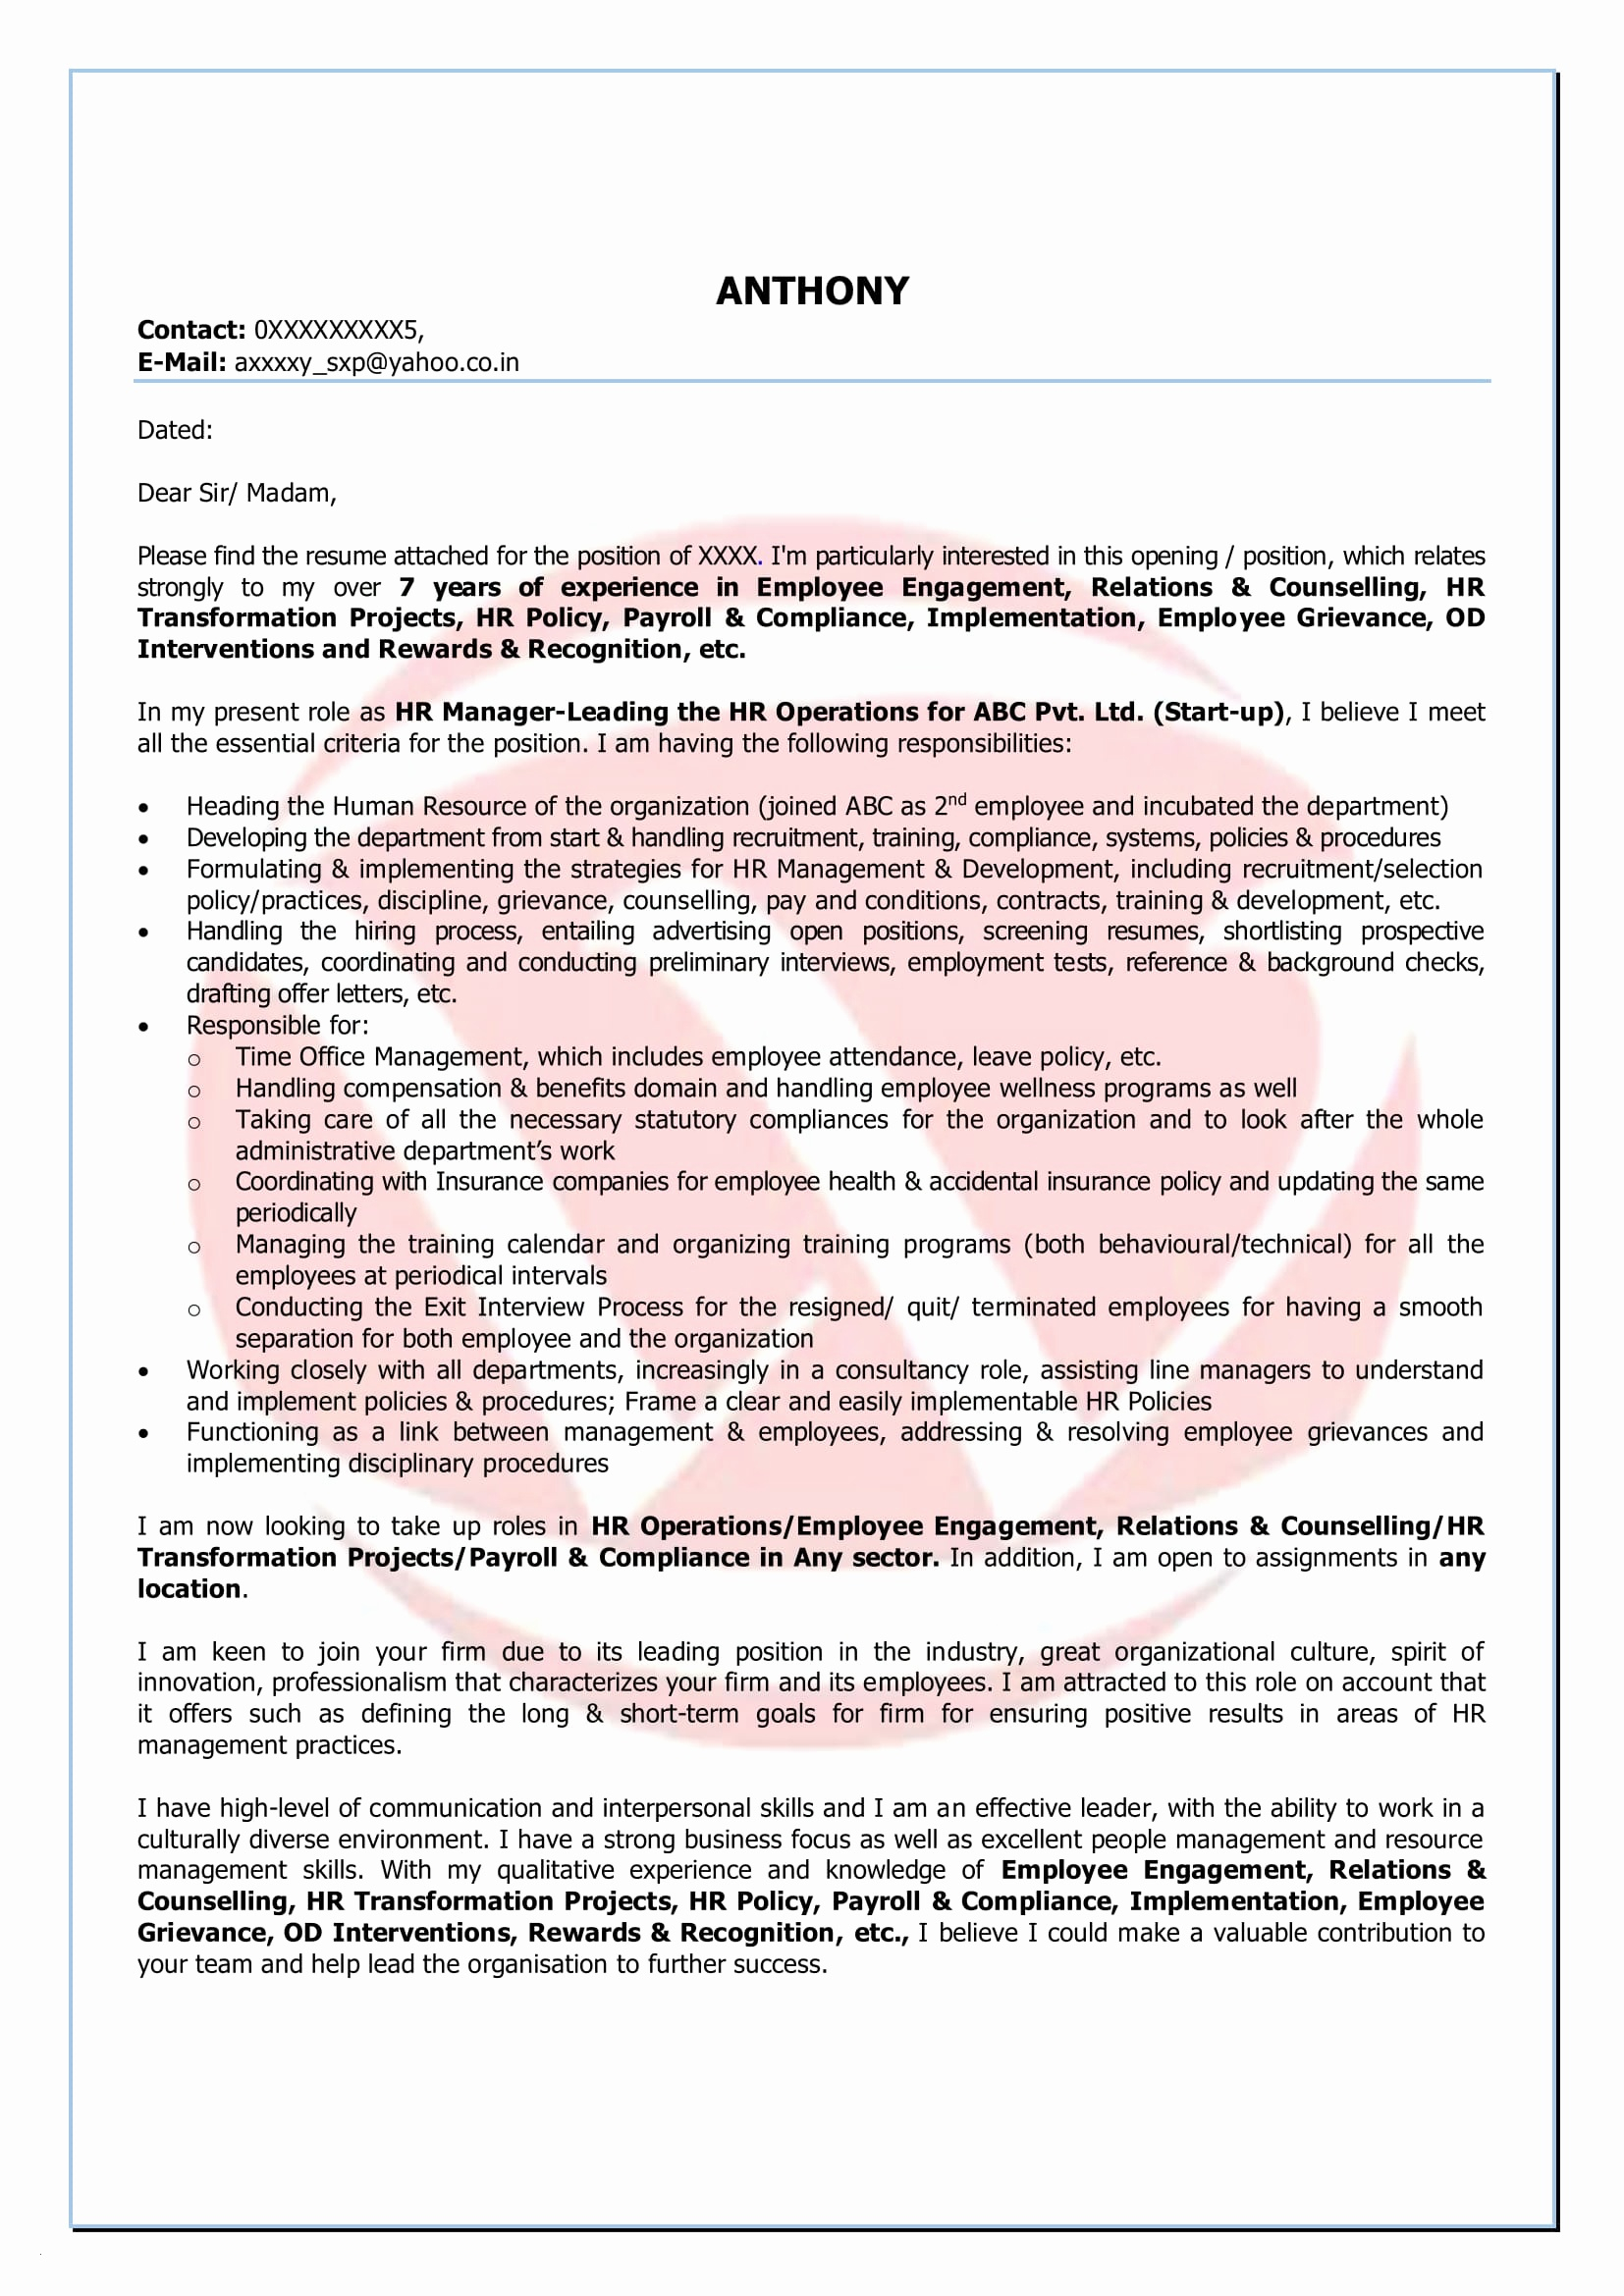 Business Valuation Engagement Letter Template - Simple Resume Cover Letter format Legalsocialmobilitypartnership